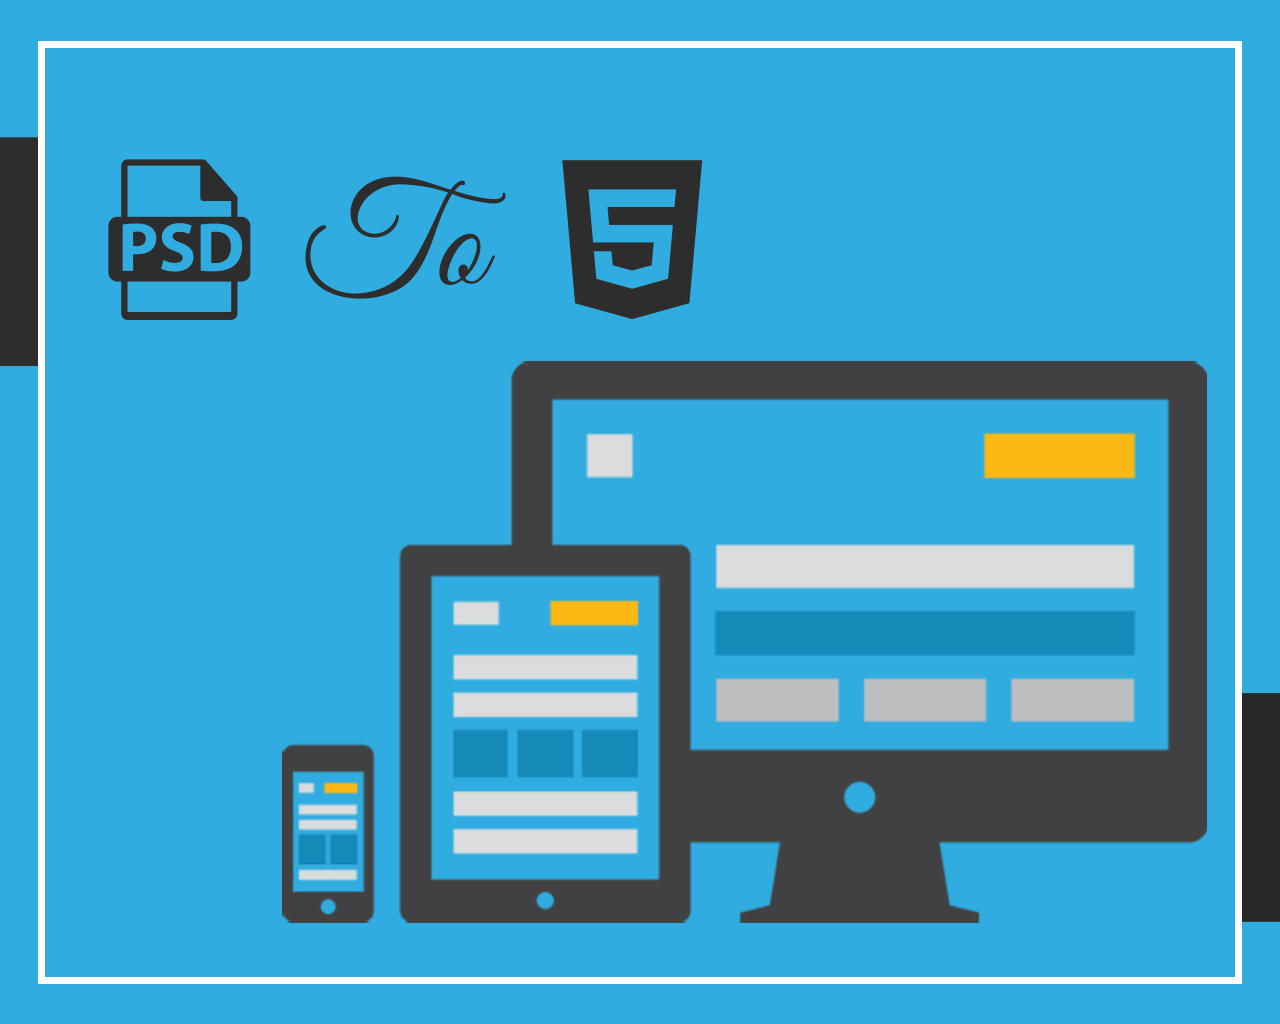 PSD to HTML5 + CSS3 (Responsive) by AzherJawed - 79231